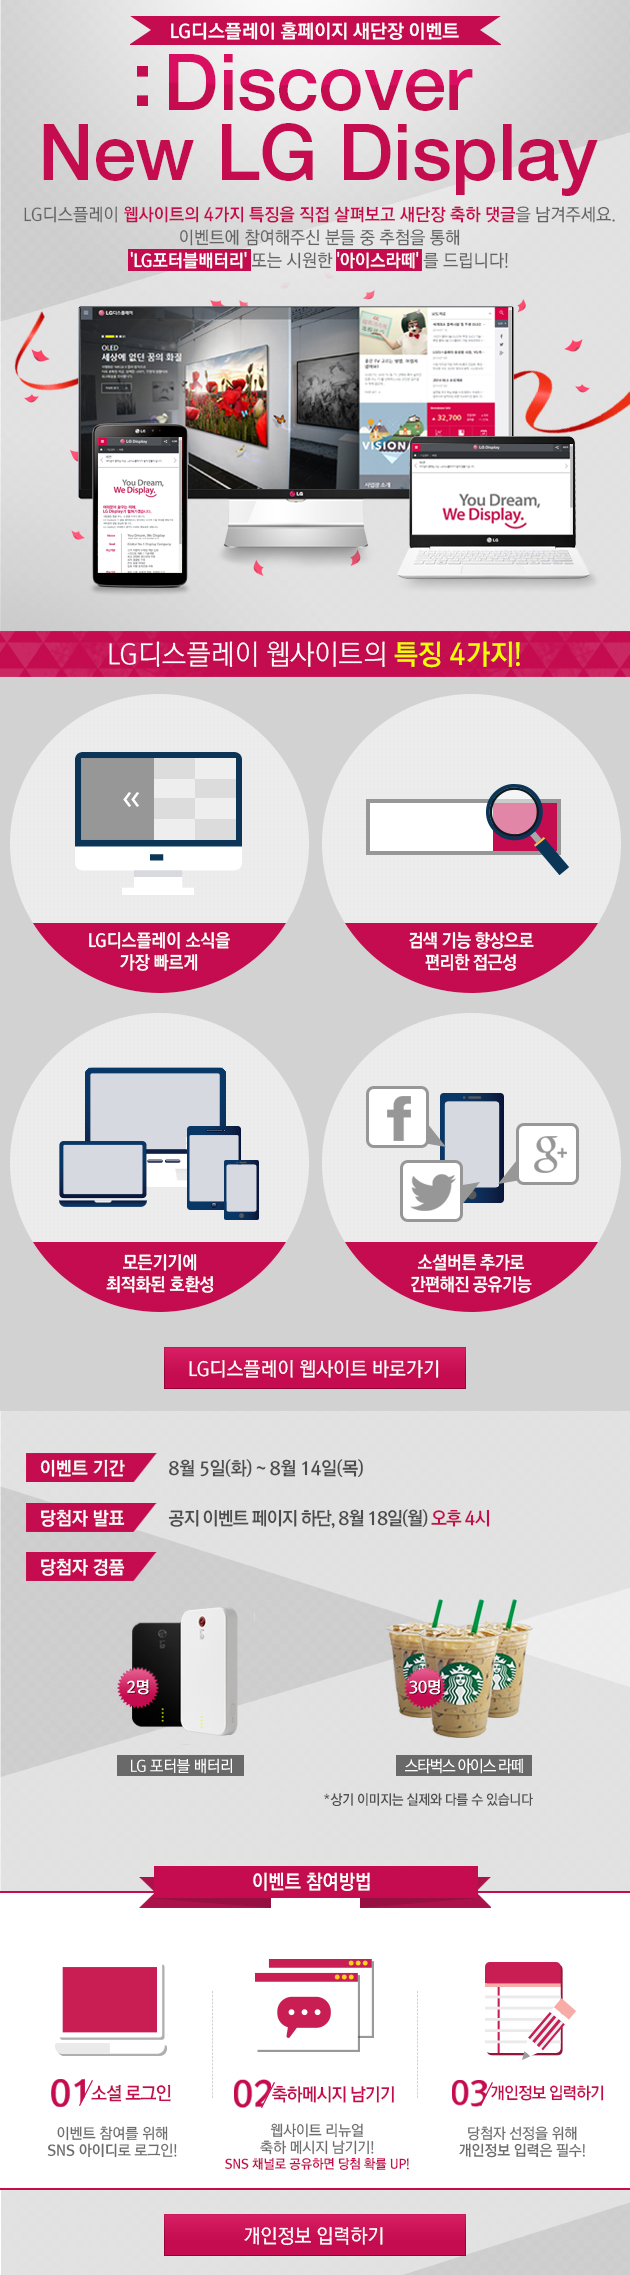 LG Display website renewal event